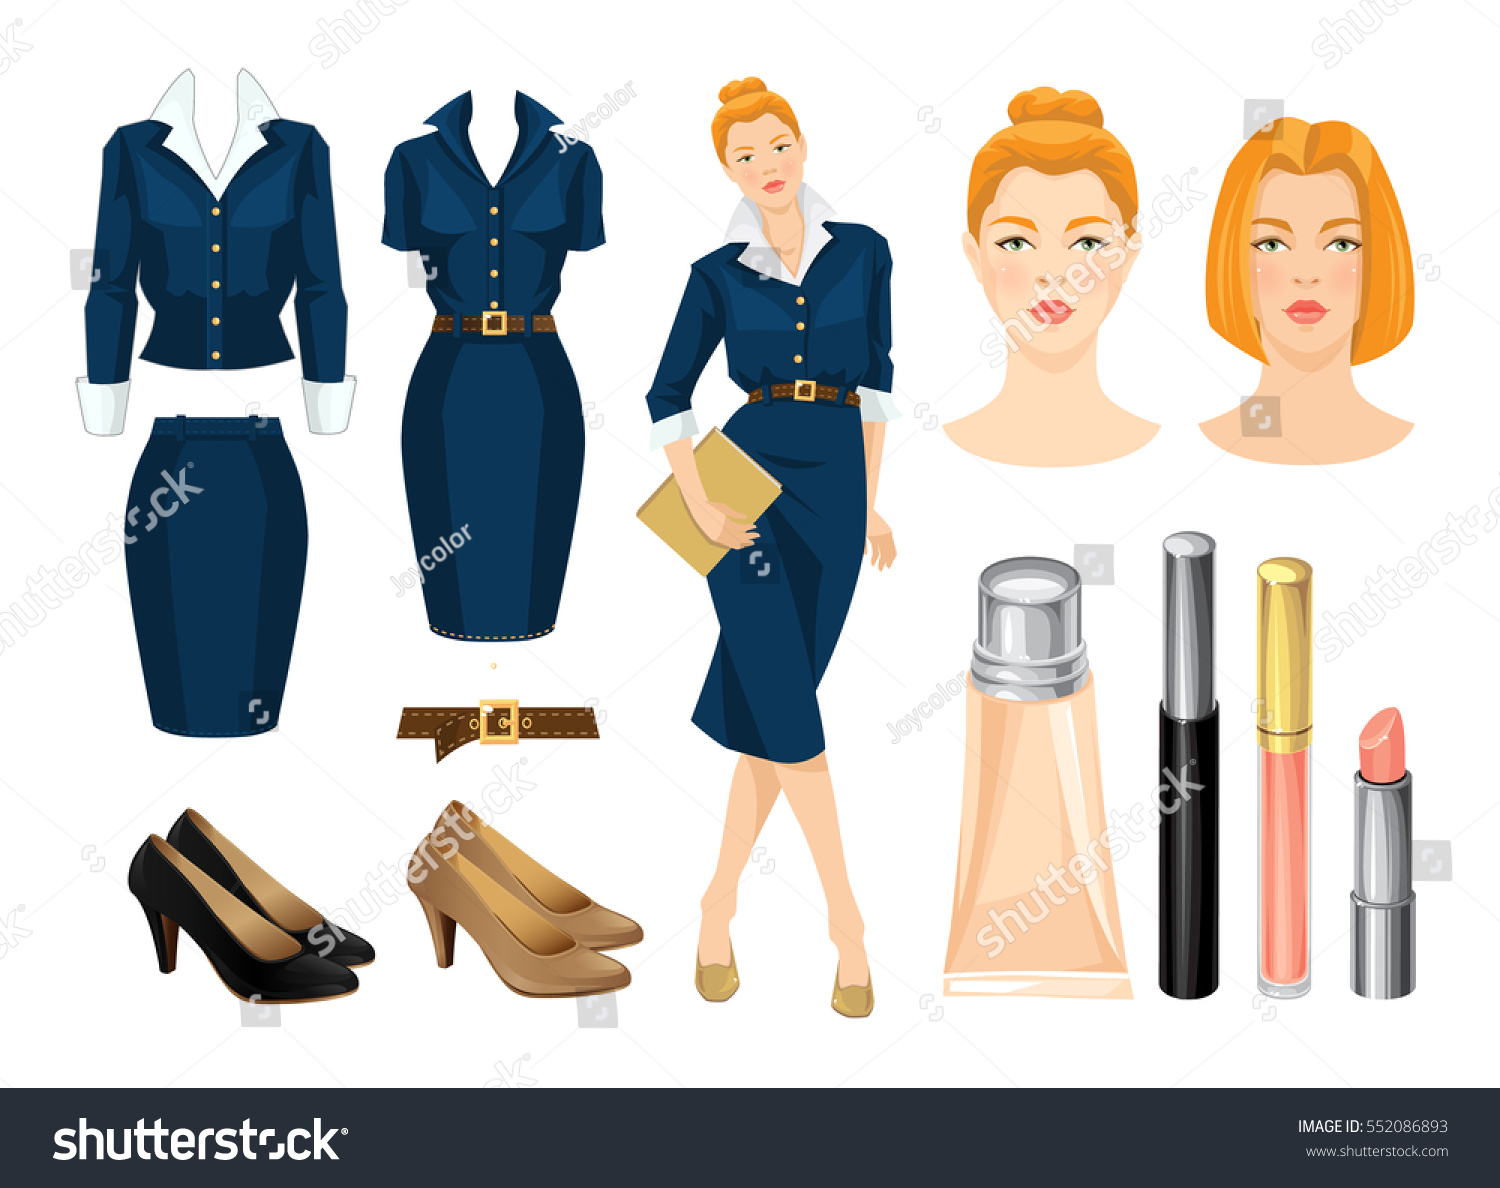 Dress code freestyle - Download Vector Illustration Of Corporate Dress Code